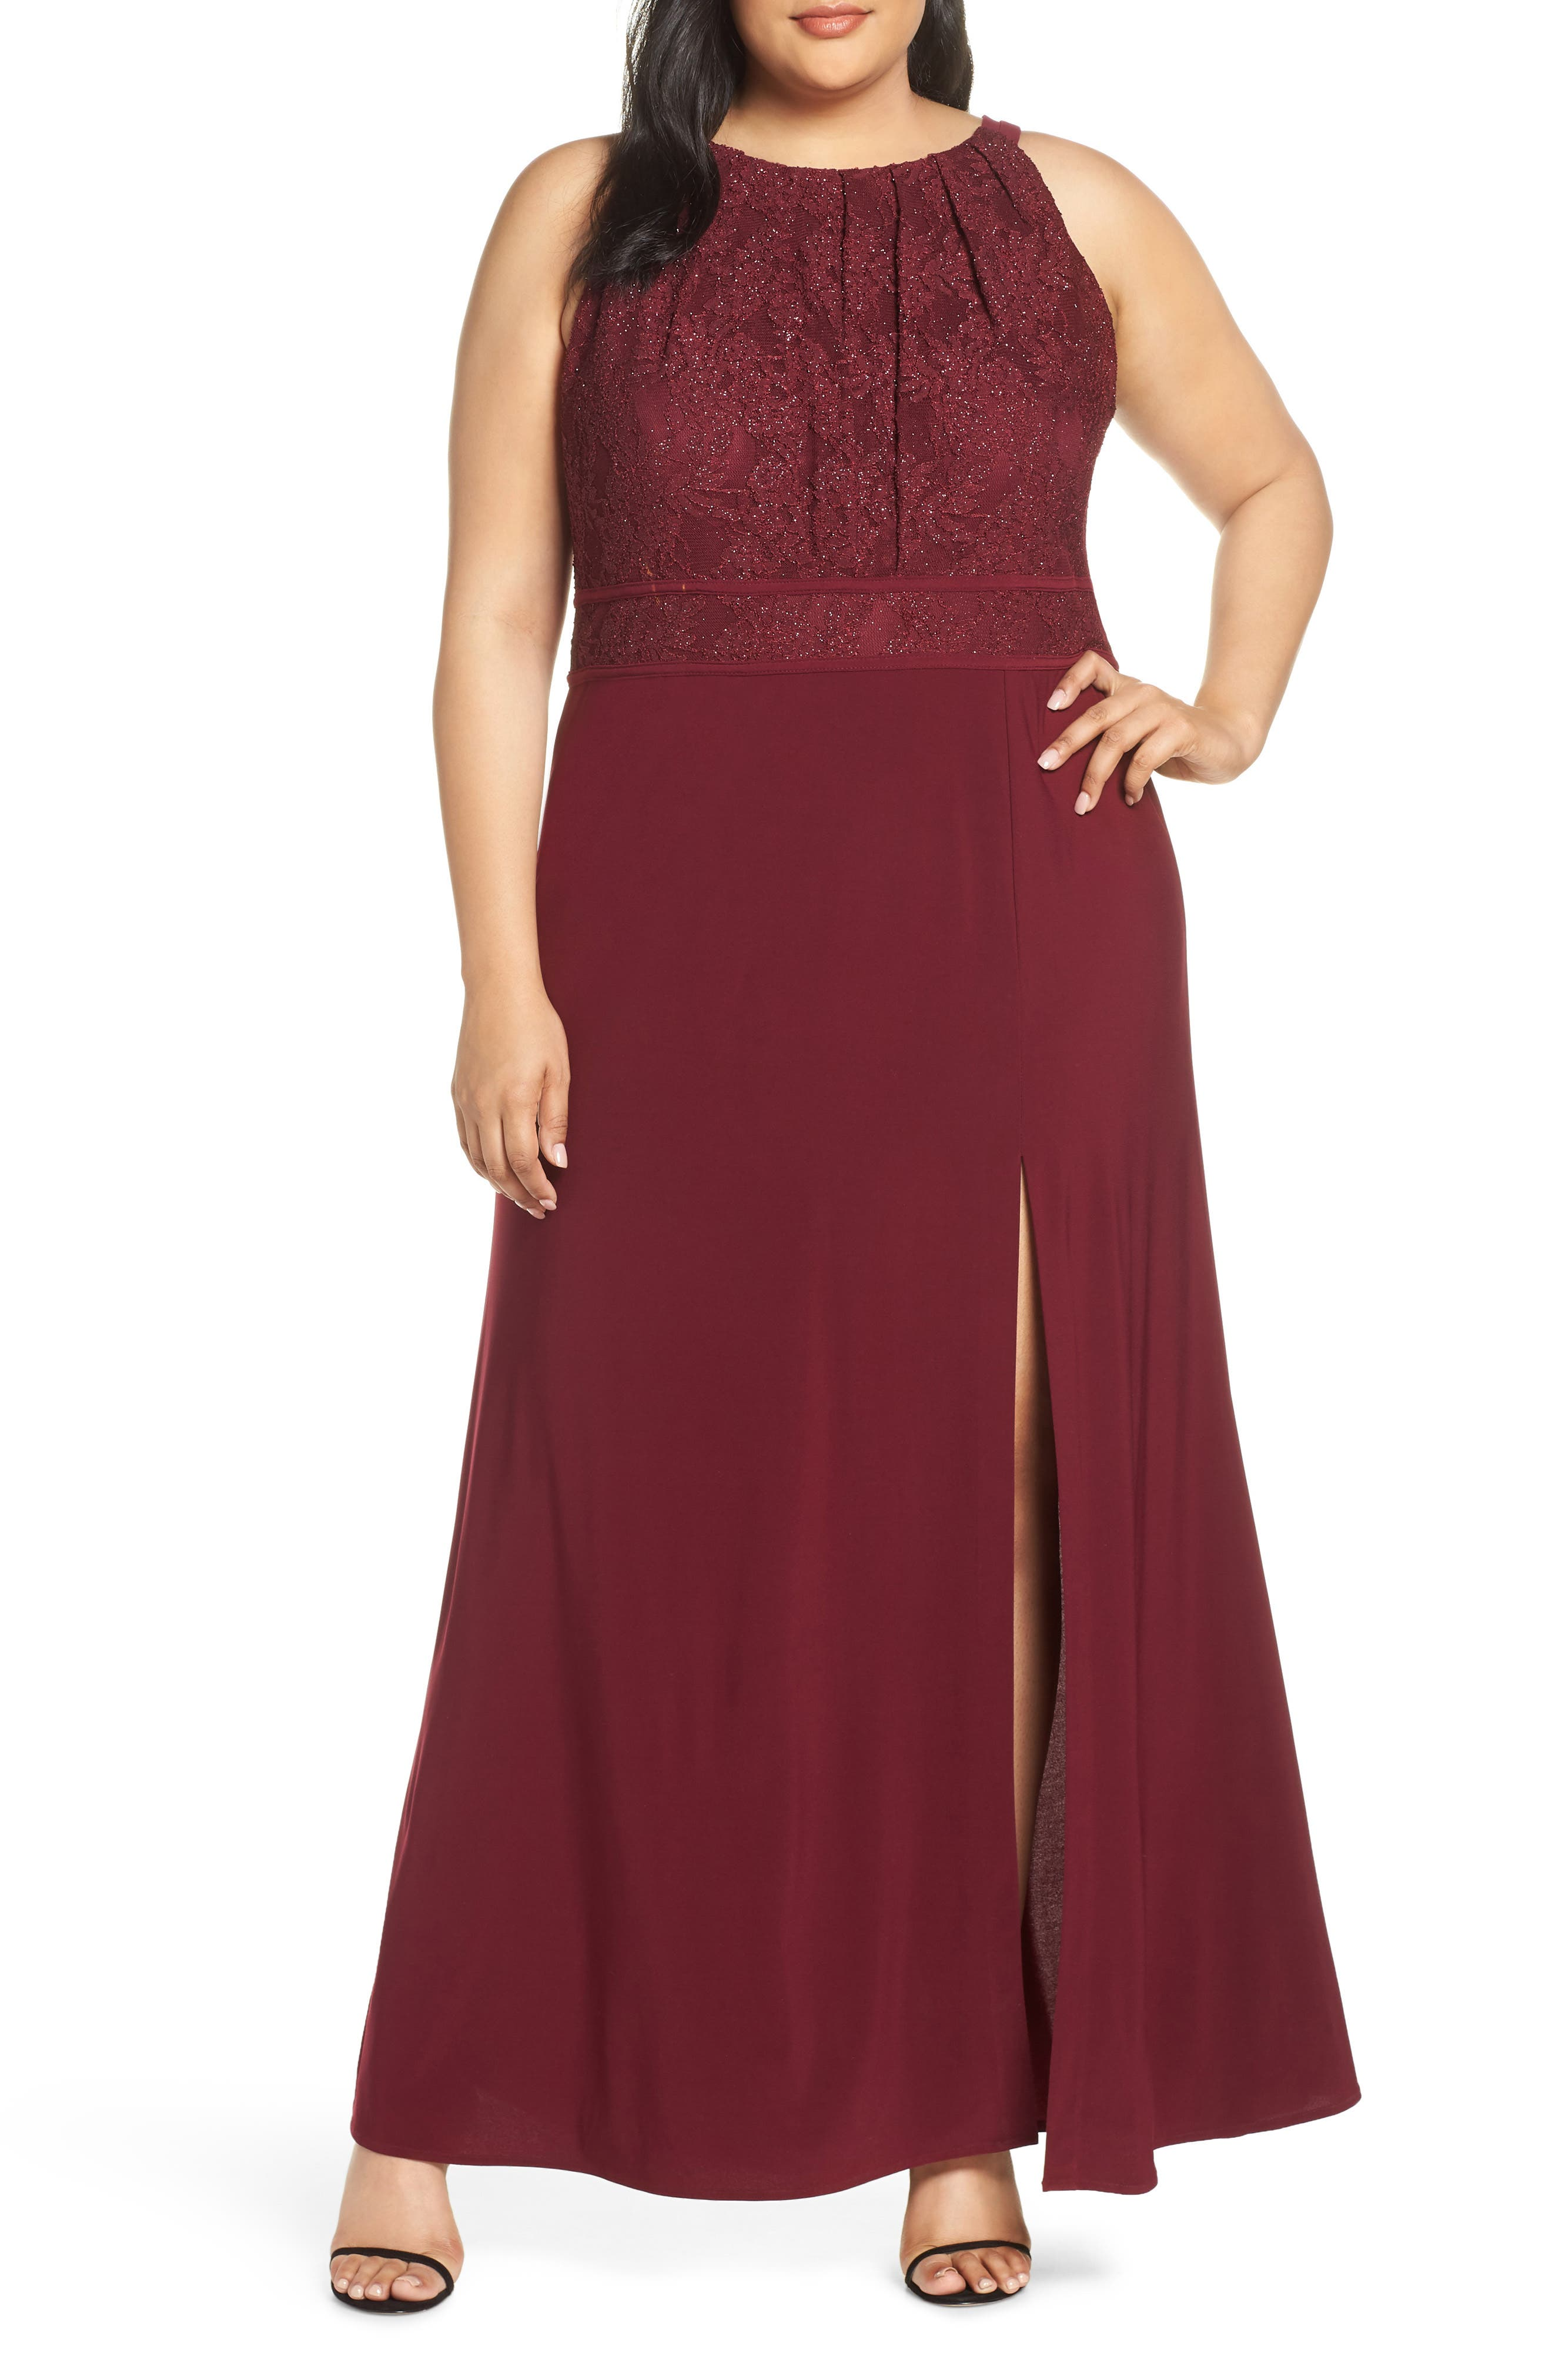 Plus Size Morgan & Co. Pleat Lace Bodice Evening Dress, Burgundy